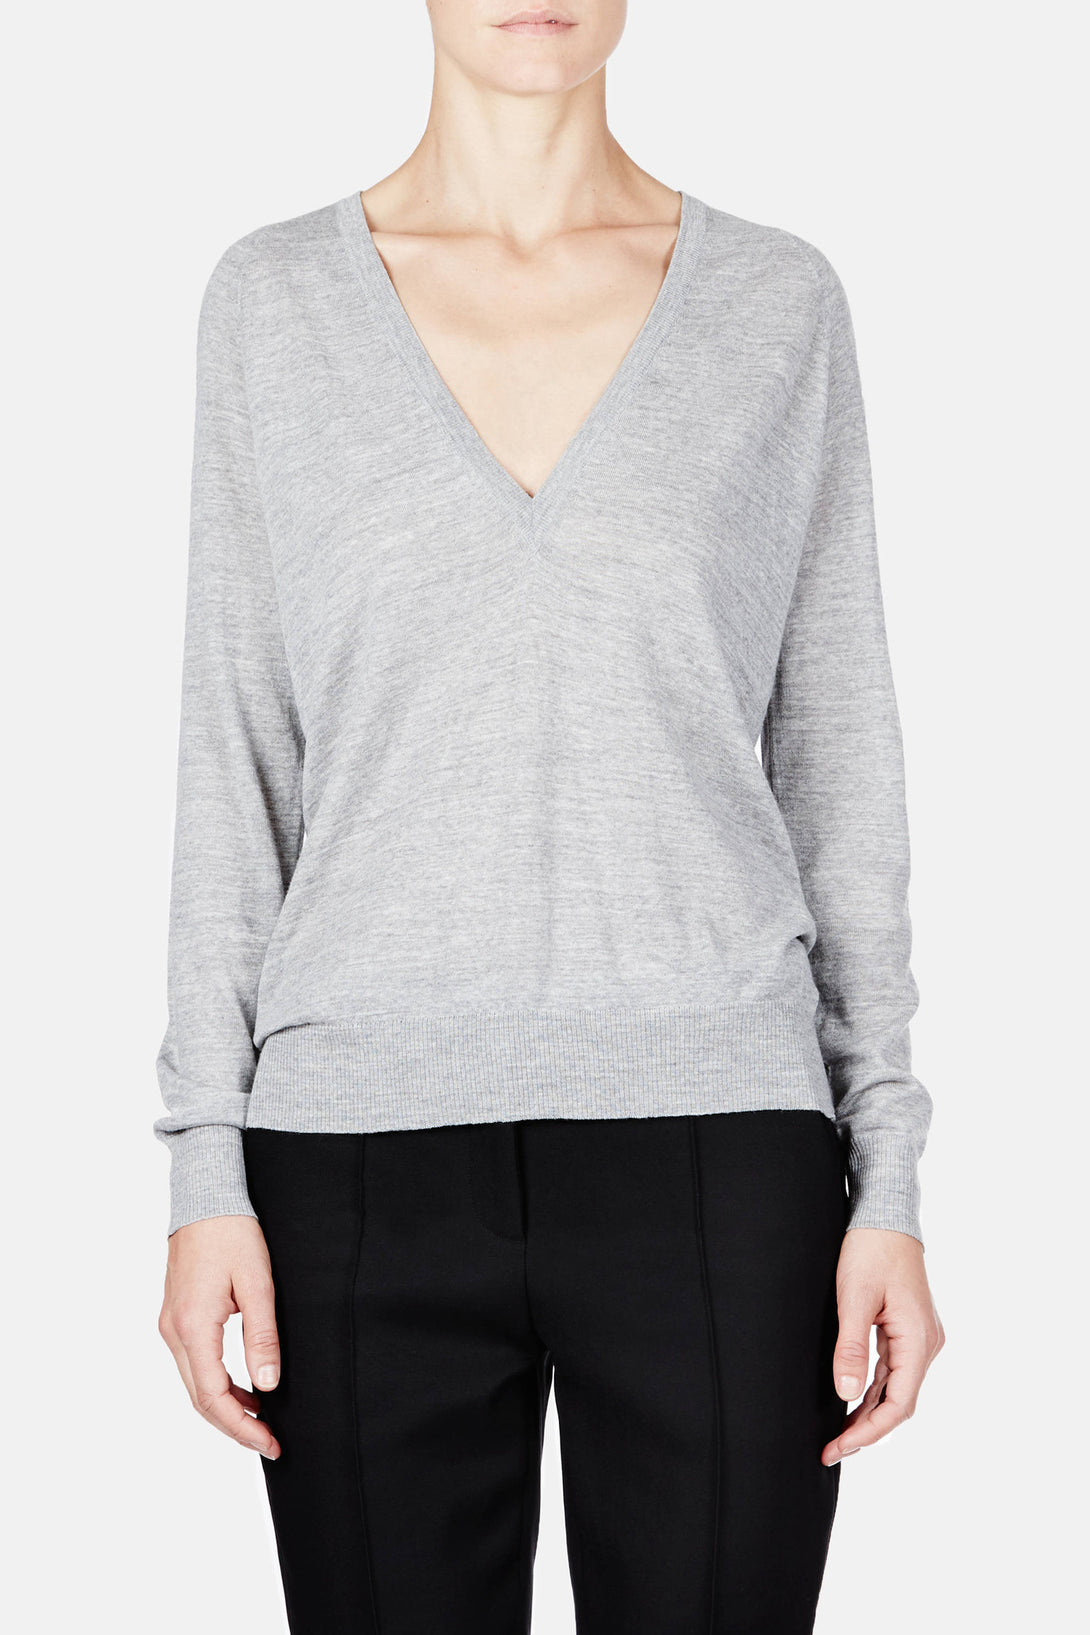 Superfine Merino L/S Deep V-Neck Sweater - Light Grey Melange